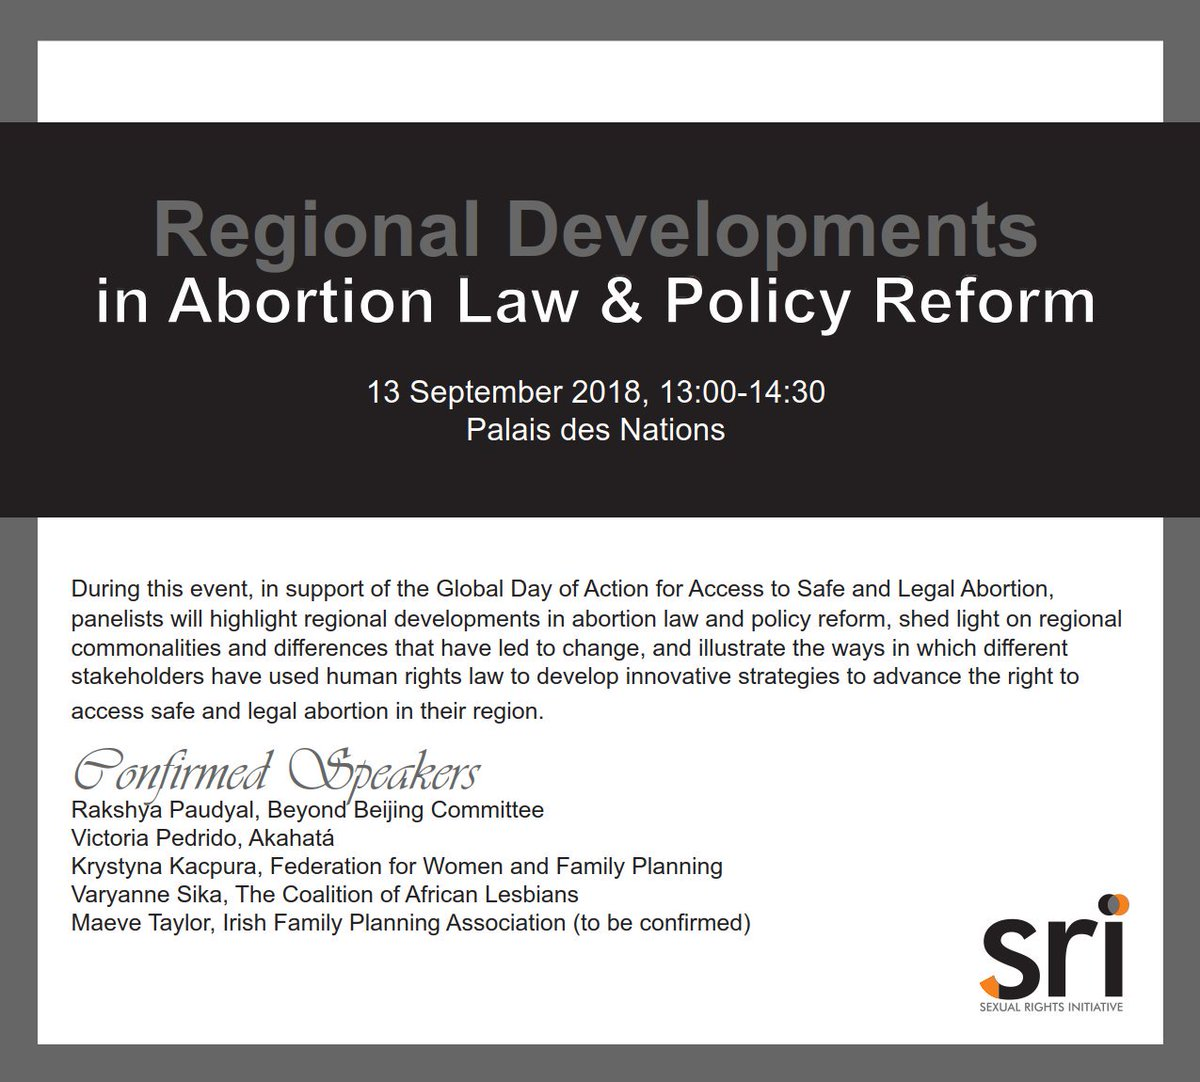 Save the date for @SexualRights&#39;s side event at #HRC39 on regional developments in #abortion law and policy reform, with @AkahataOrg @CALAdvocacy @BeyondBejing @federapl and @IrishFPA! #SRHR #AbortoLegalYa <br>http://pic.twitter.com/36ndLXMqyq